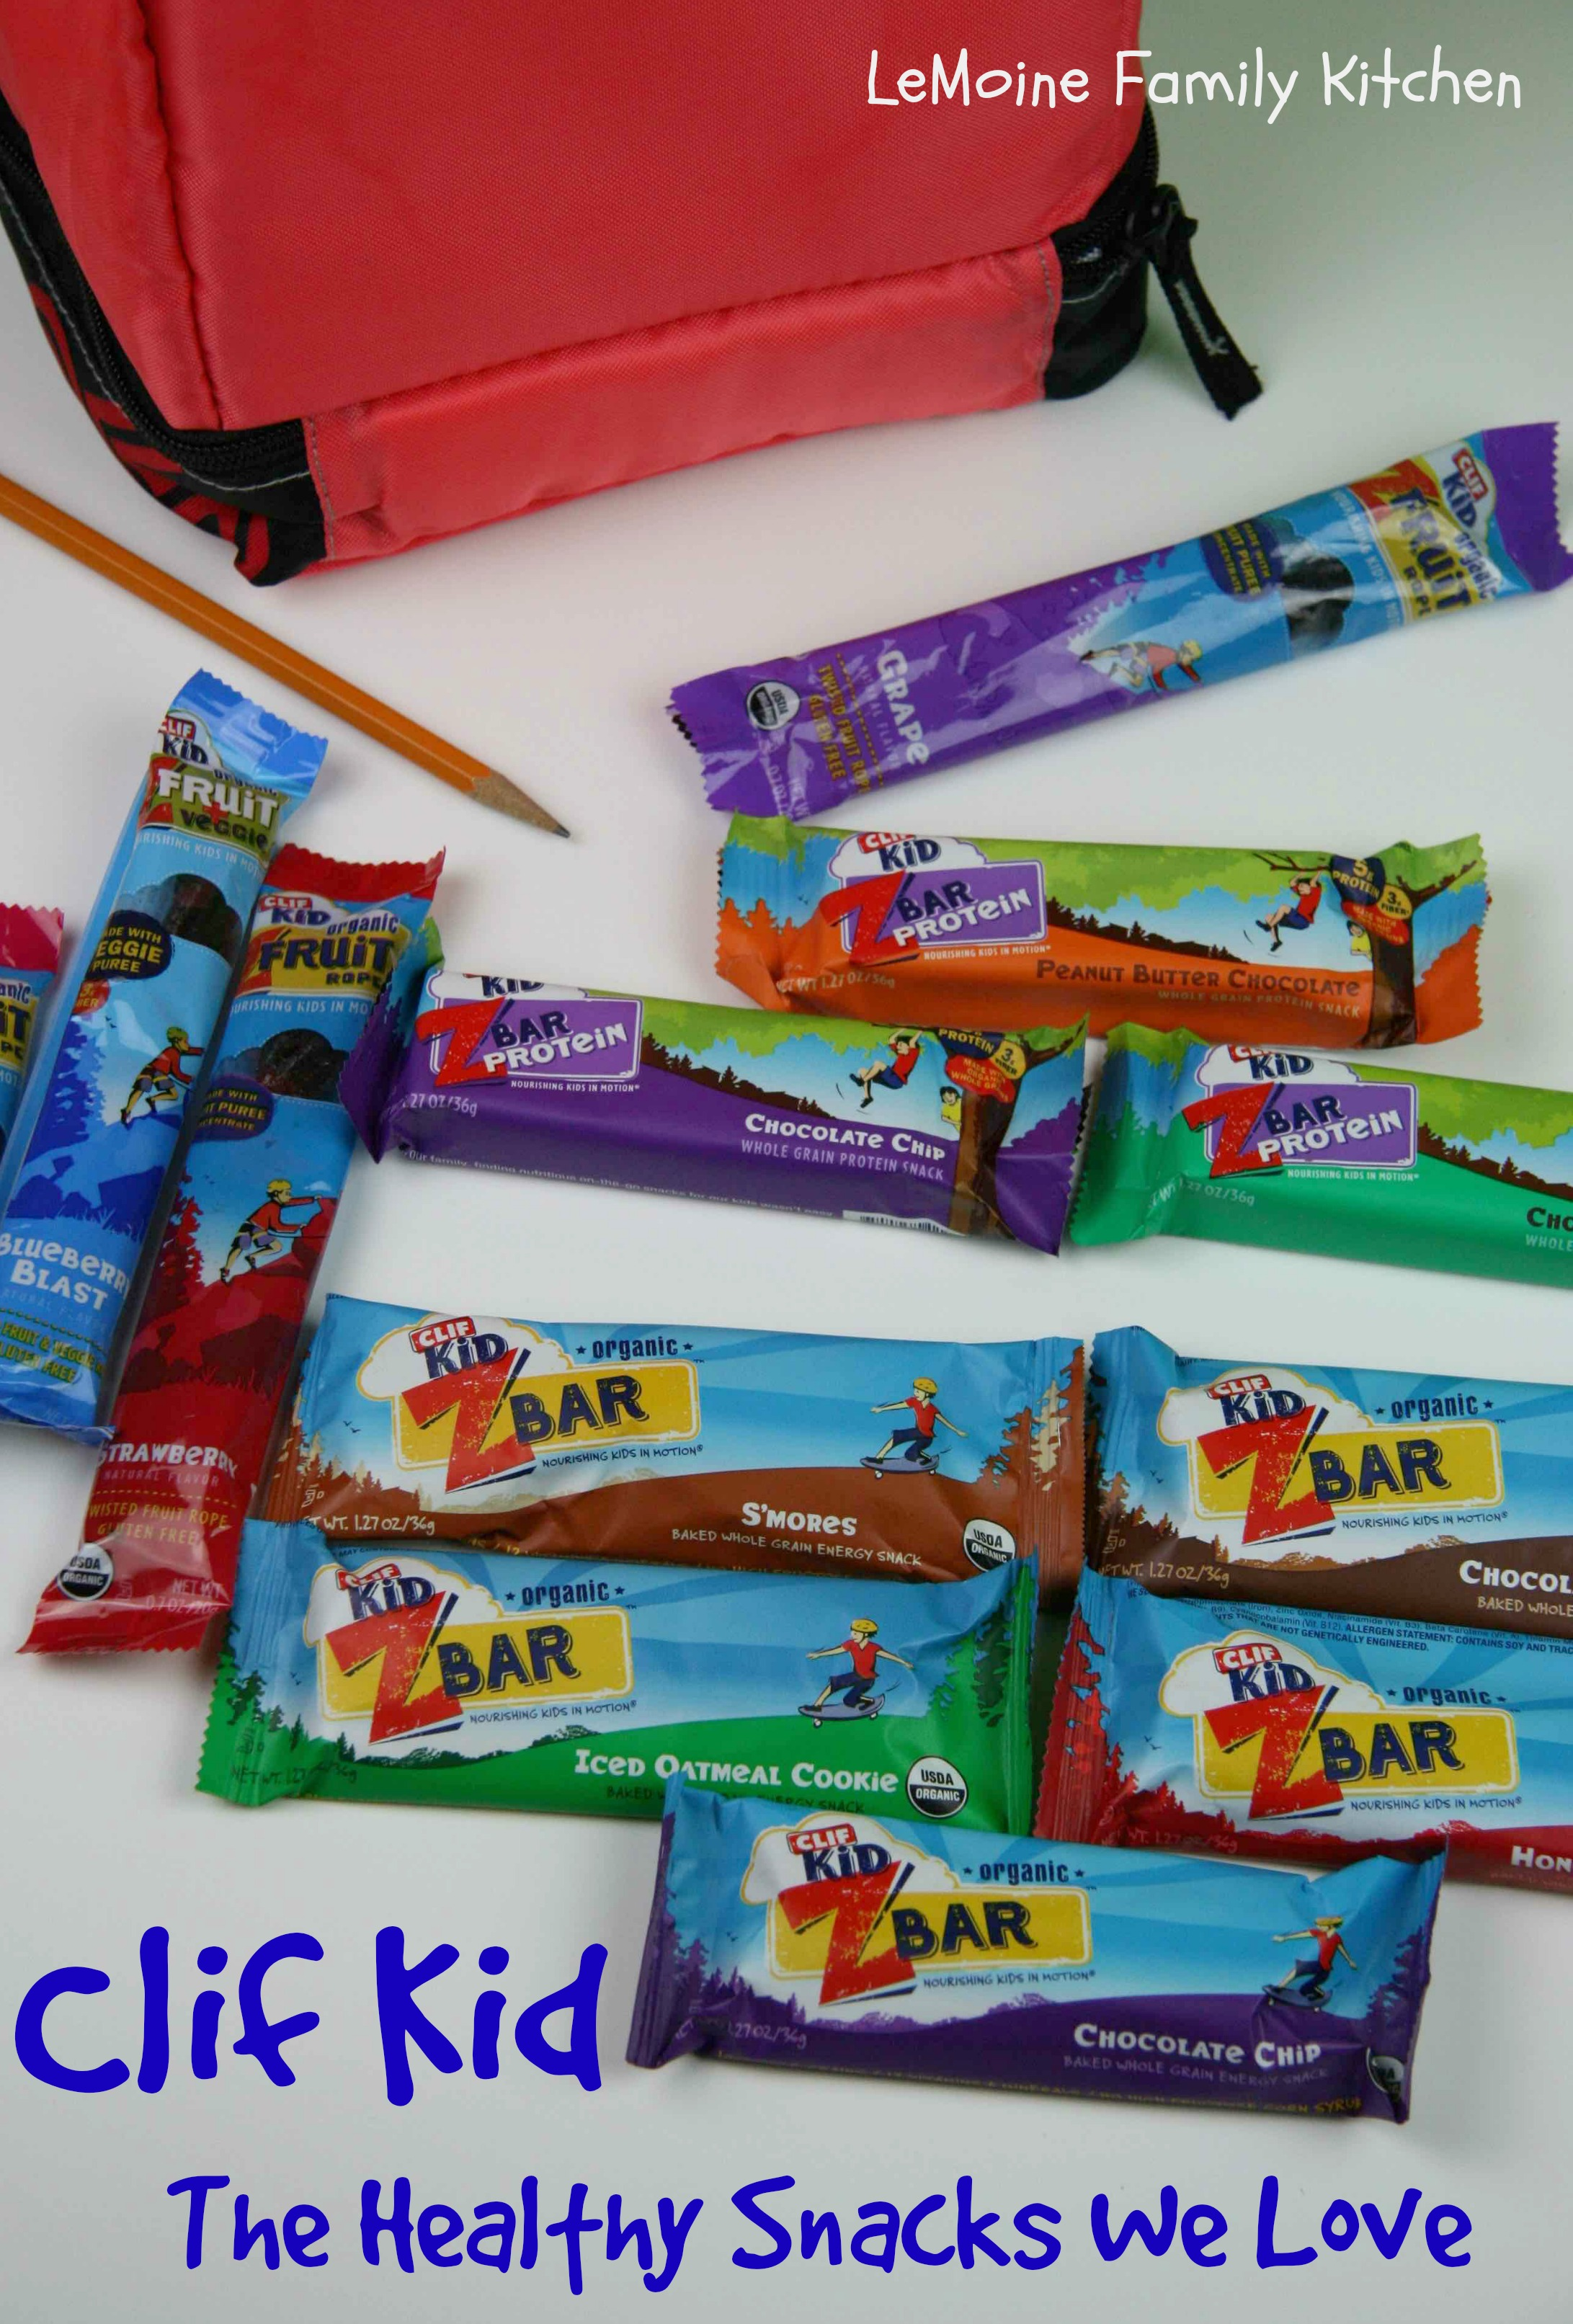 Clif Kid :: The Healthy Snacks We Love